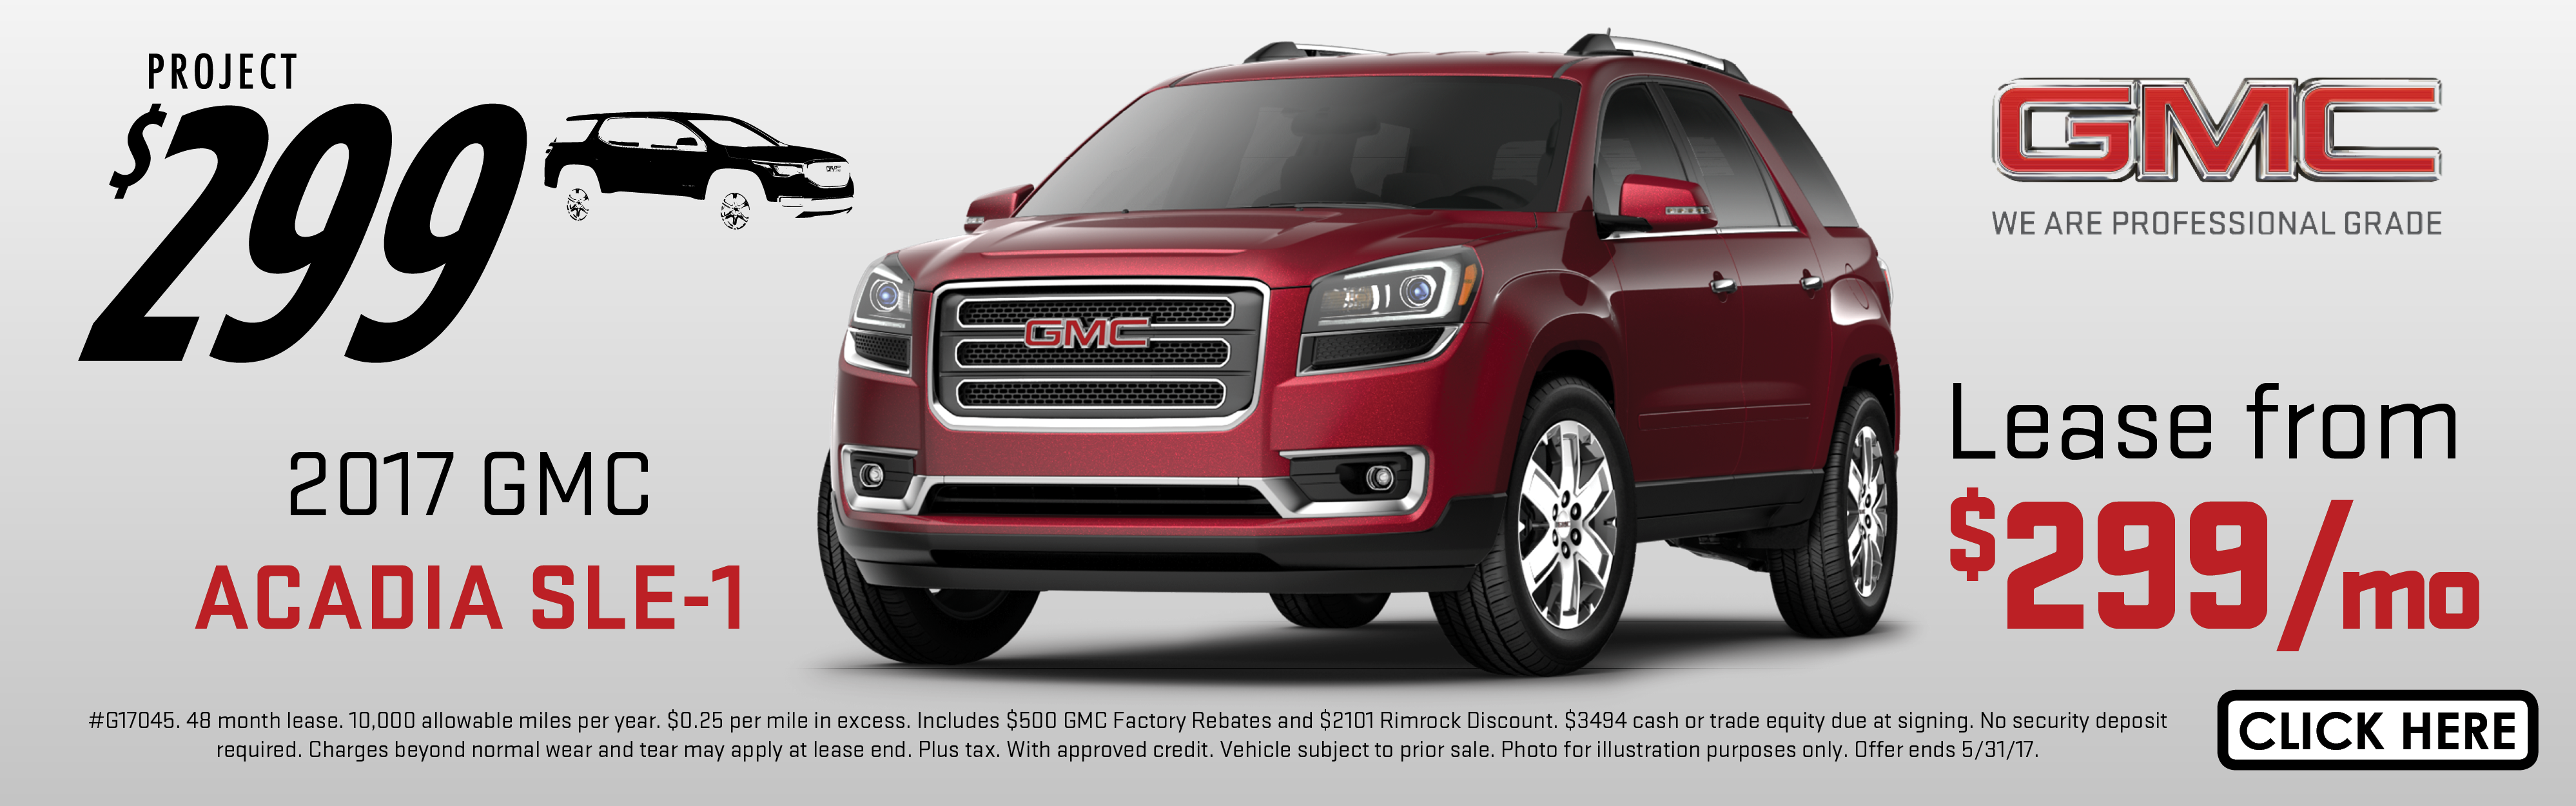 rimrock gmc is a billings gmc dealer and a new car and used car billings mt gmc dealership project suv